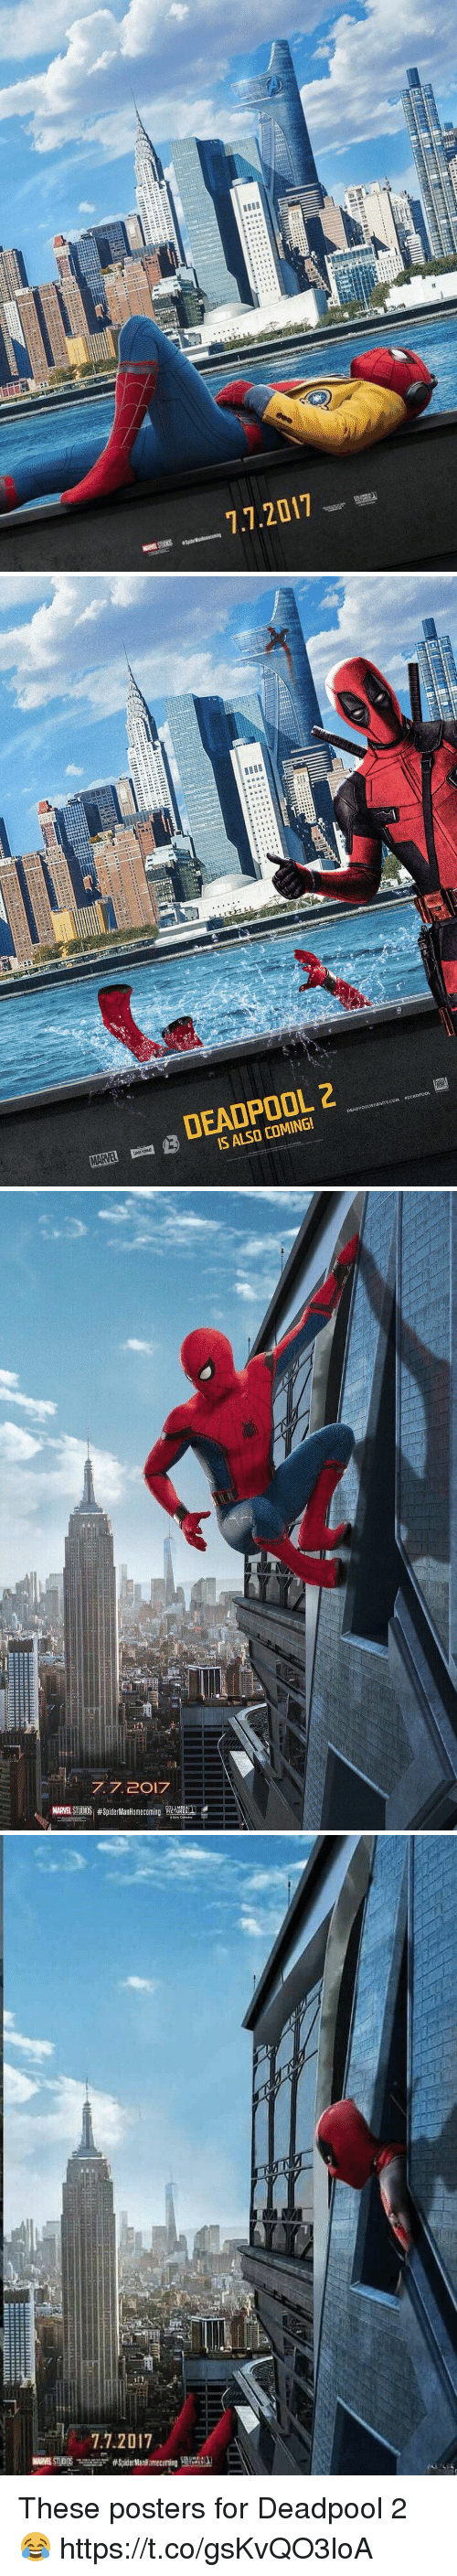 Memes, Deadpool, and Columbia: 7.7.2017   DEADPOOL 2  aDEADPOOL  EBSIT  DP  MAME B   77, 2017  COLUMBIA  MAME STUDOS #SpiderManHomecoming  CTURES   - 7.7.2017  wmusus war #Spi Manitomecarting  n  ELI II lijuuuuu These posters for Deadpool  2 😂 https://t.co/gsKvQO3loA